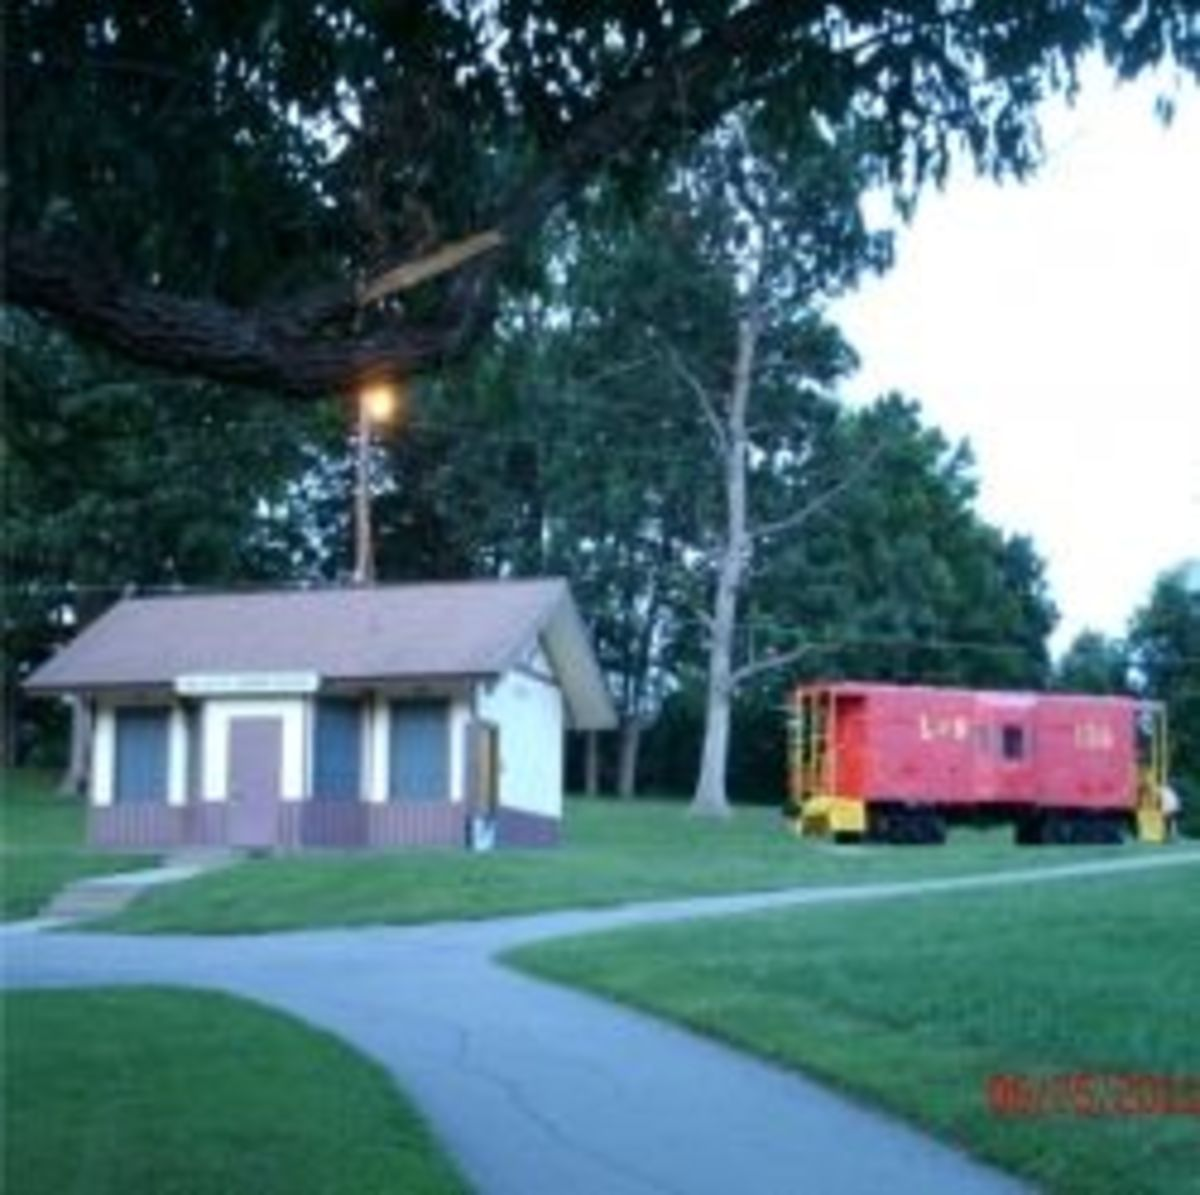 Red Caboose Park's Comfort Station and little red caboose